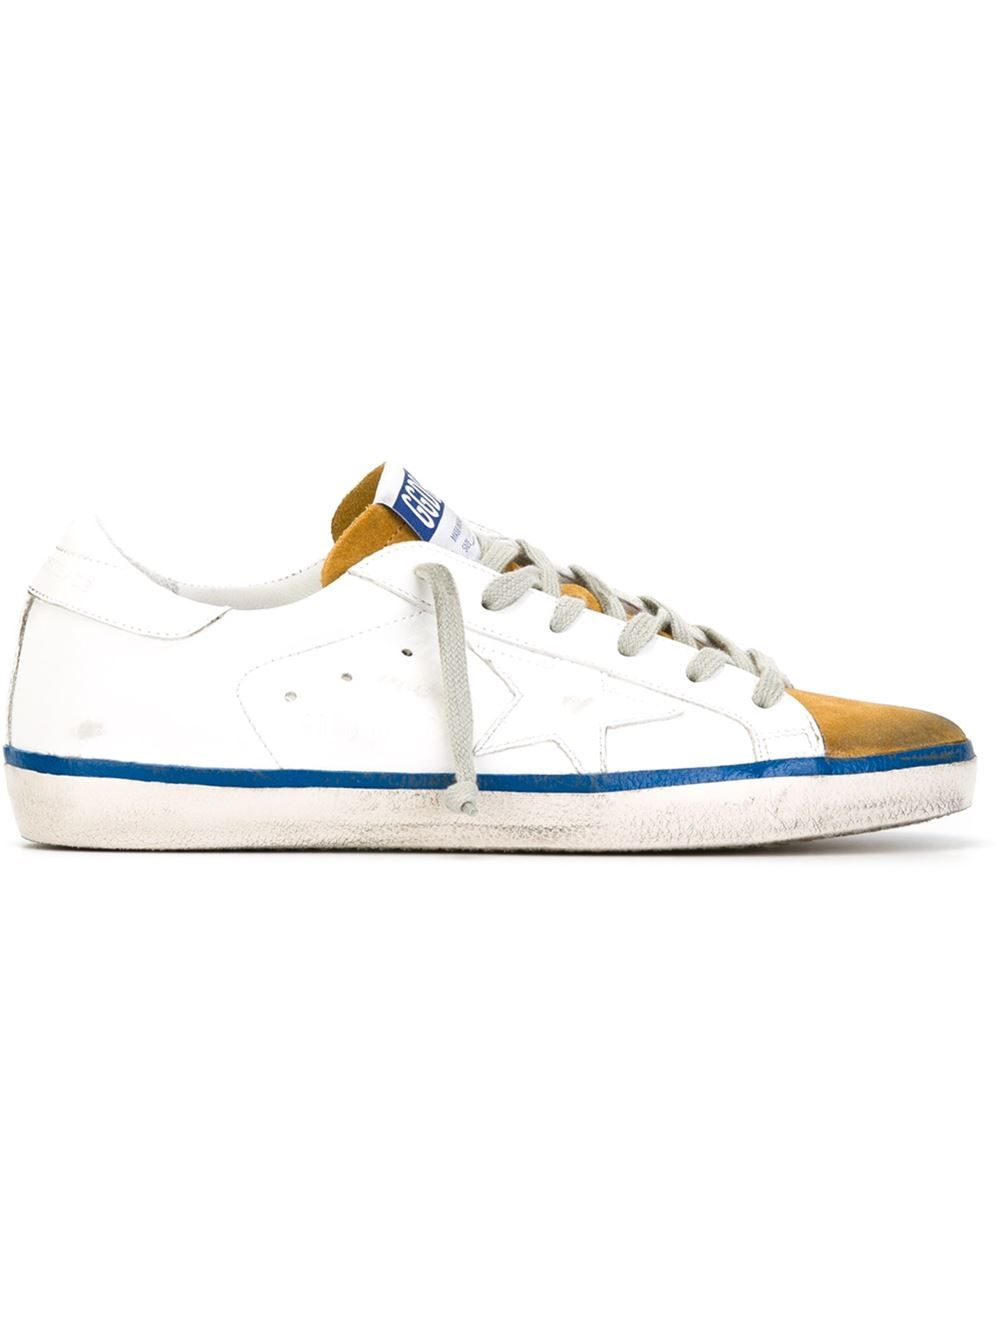 378f300f40262 https   www.goldengoosesneakerssale.com  164   Superstar Sneakers Mens White